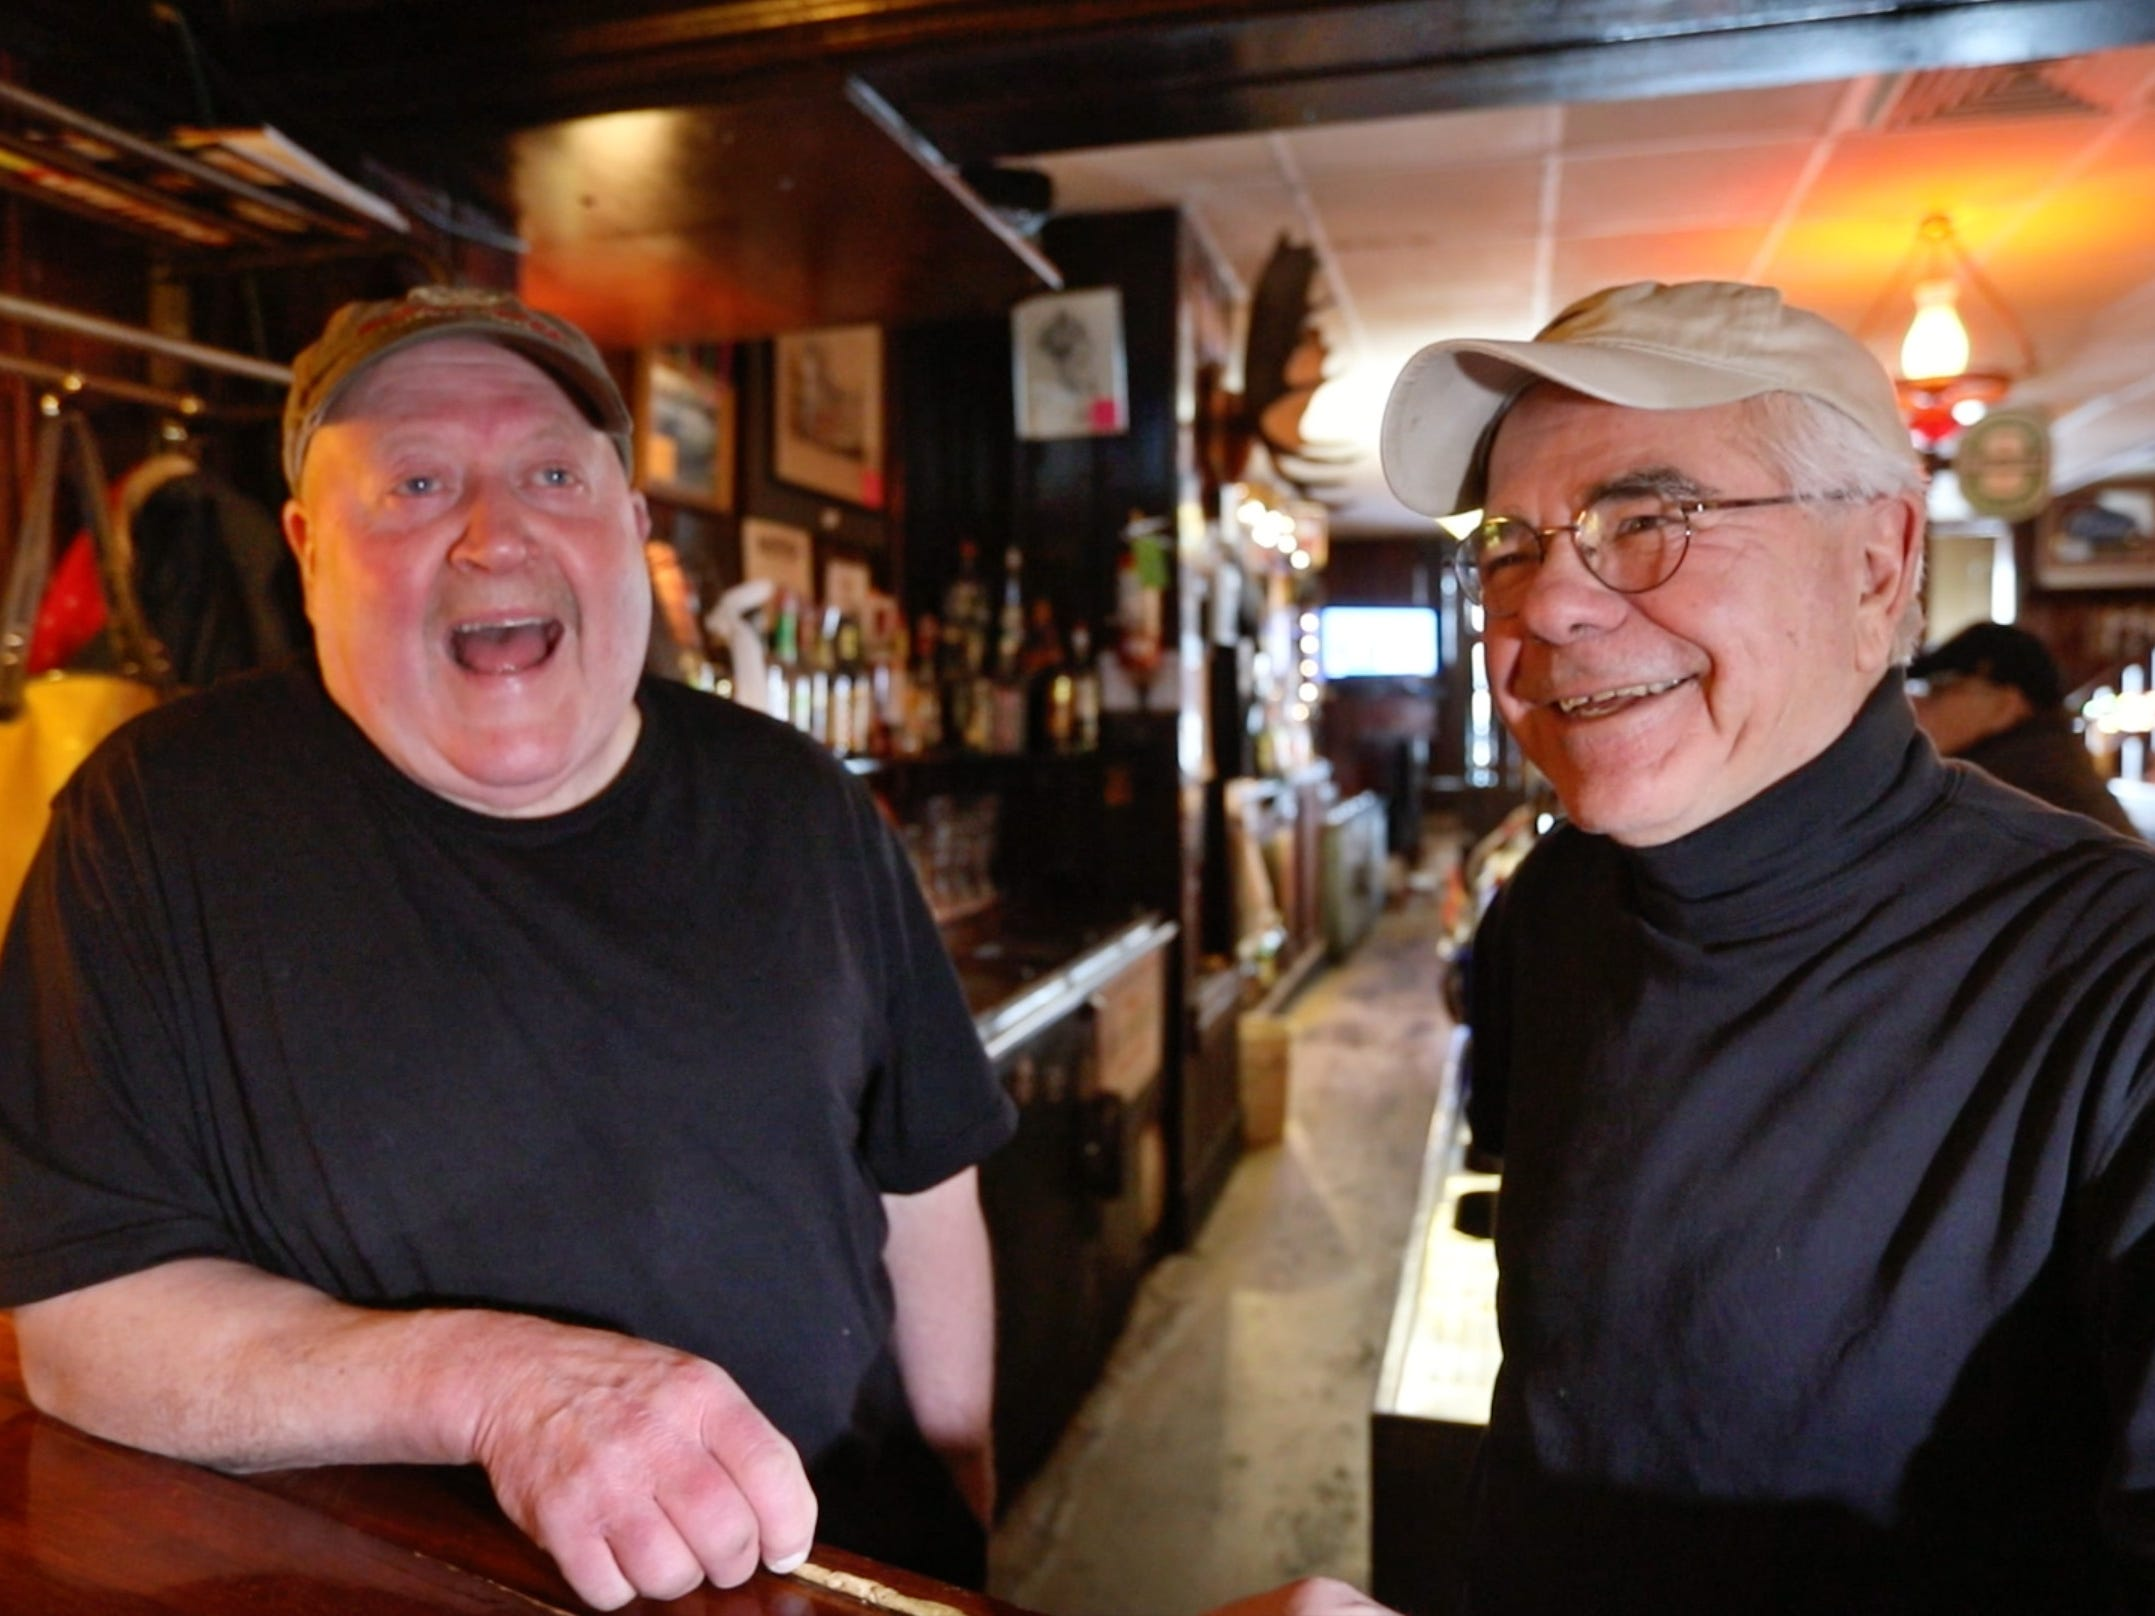 Owners Steve Sahs, left, and Jim Barnash share laughs from behind the bar as they talk about the some favorite memories at their Reunion Inn in Irondequoit Thursday, Jan. 24, 2019.